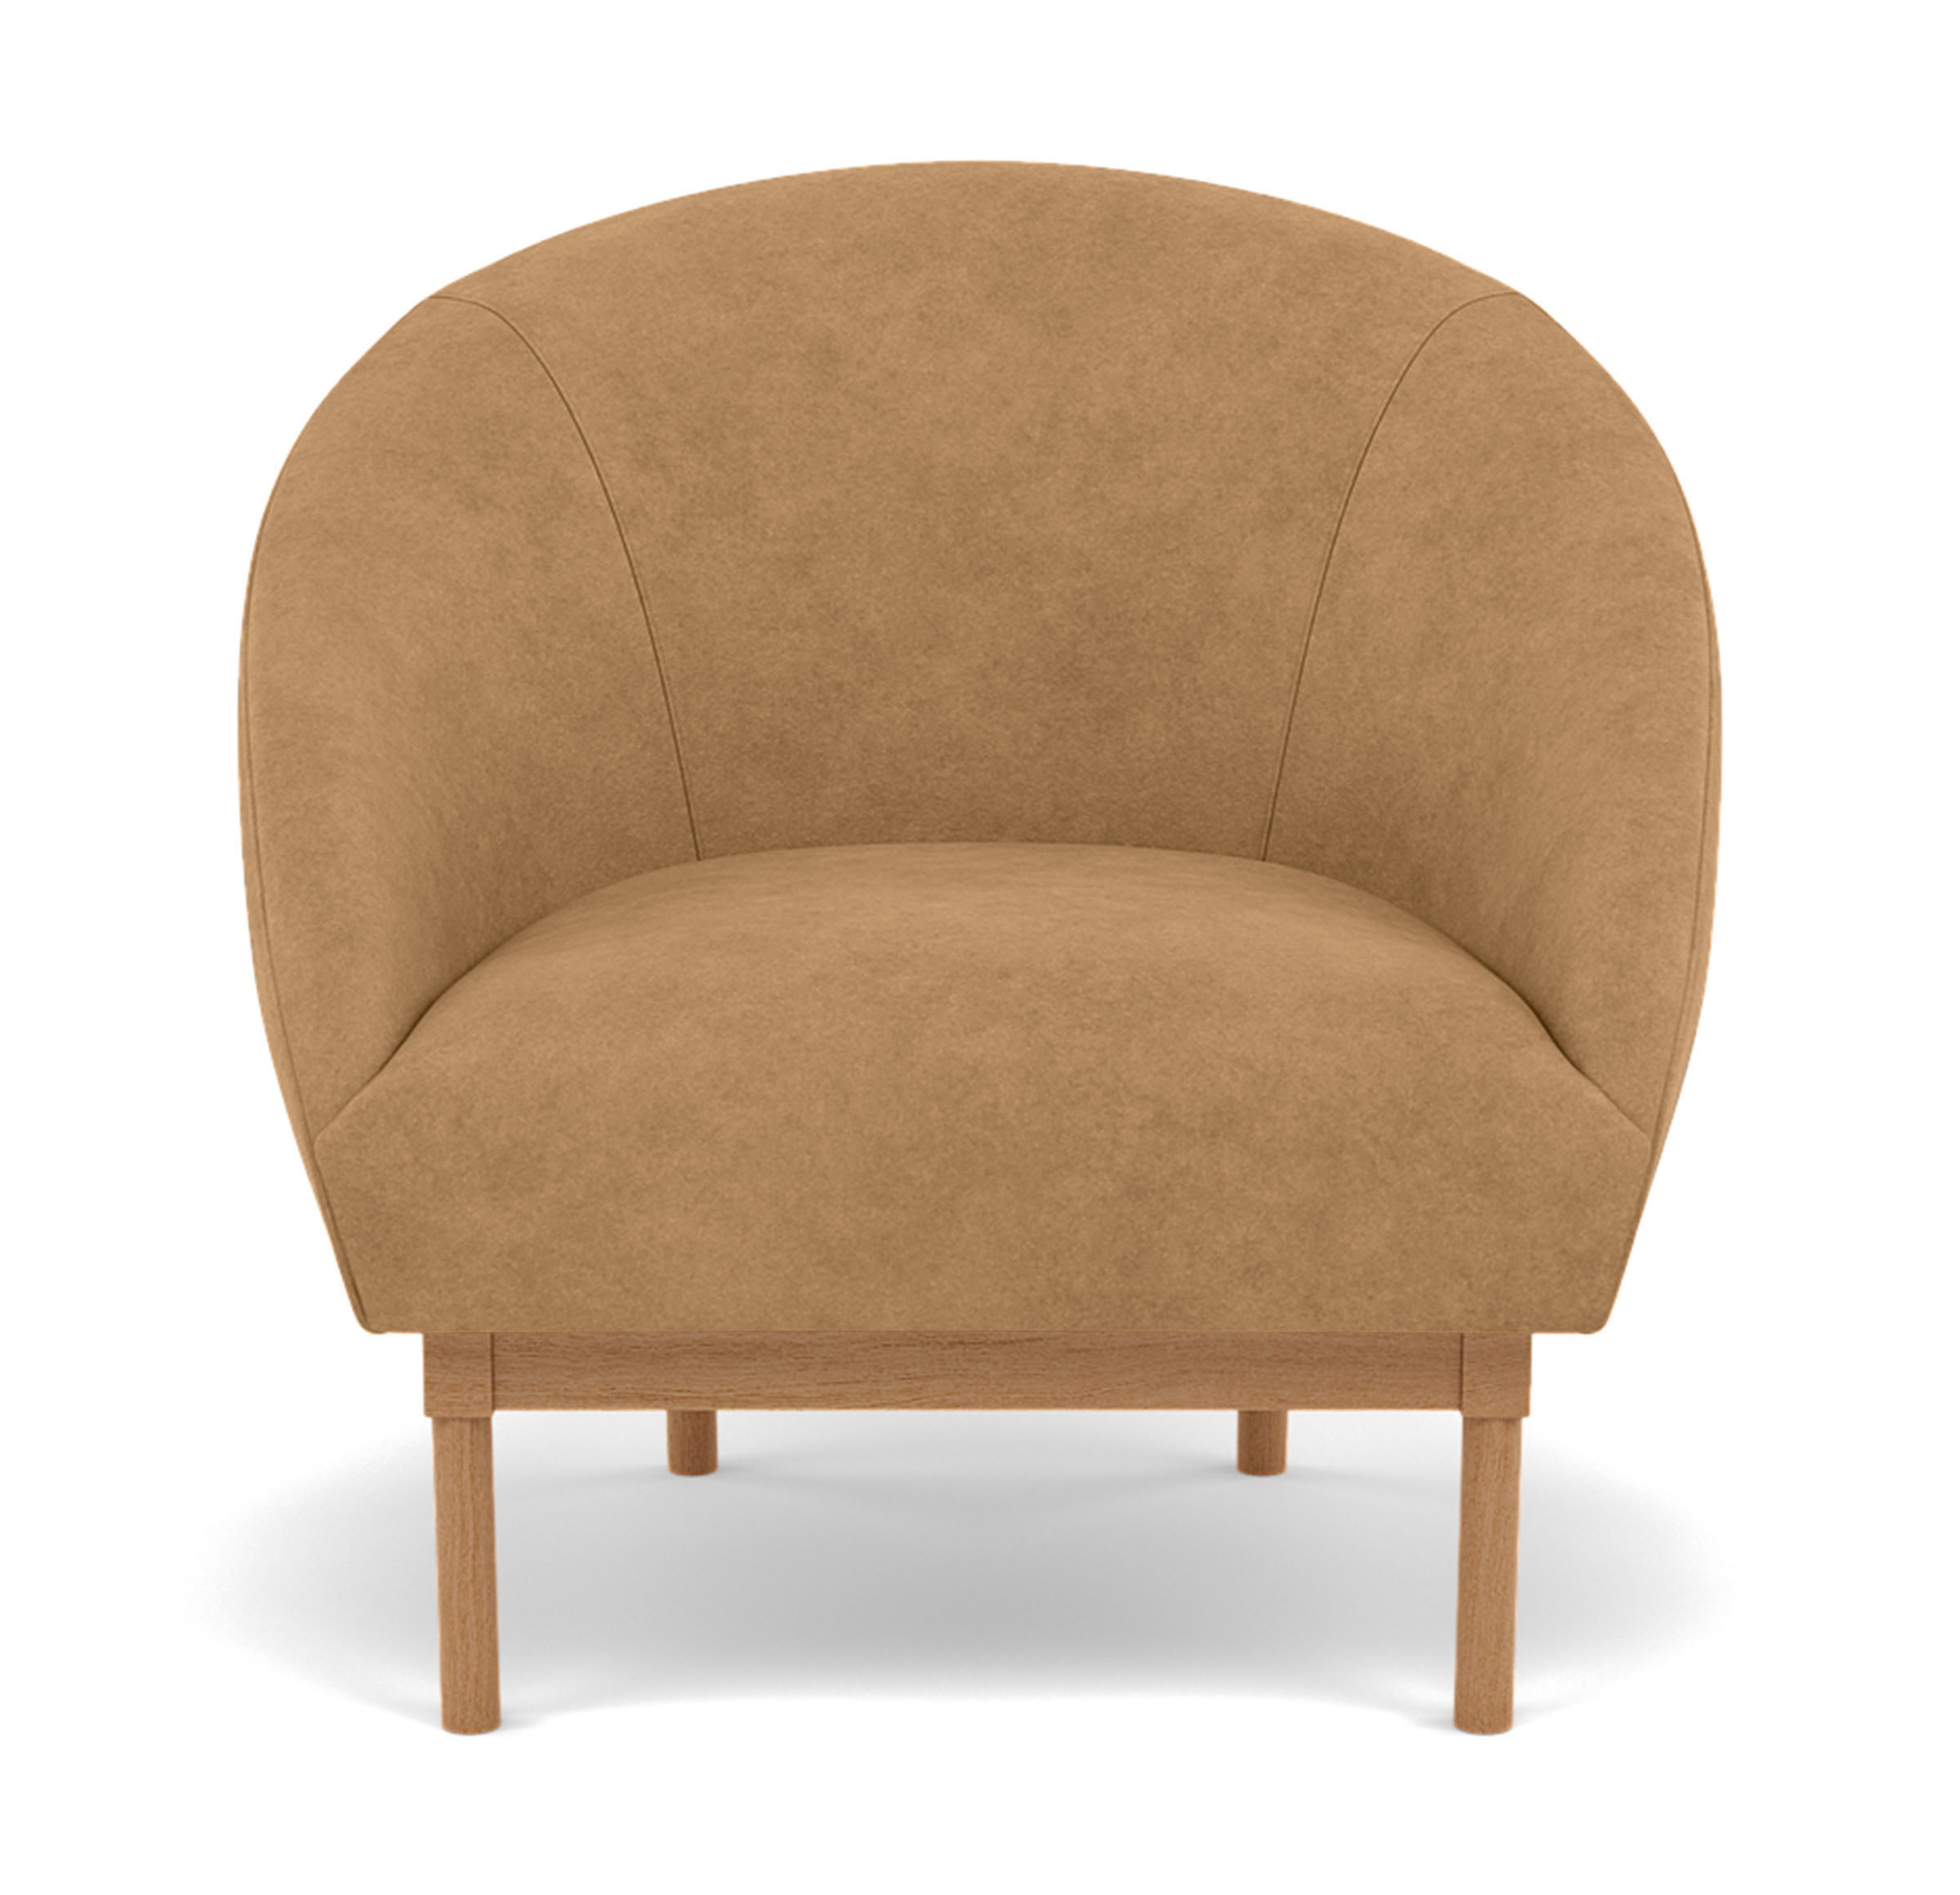 ROSE LEATHER CHAIR, Moab - DESERT, hi-res